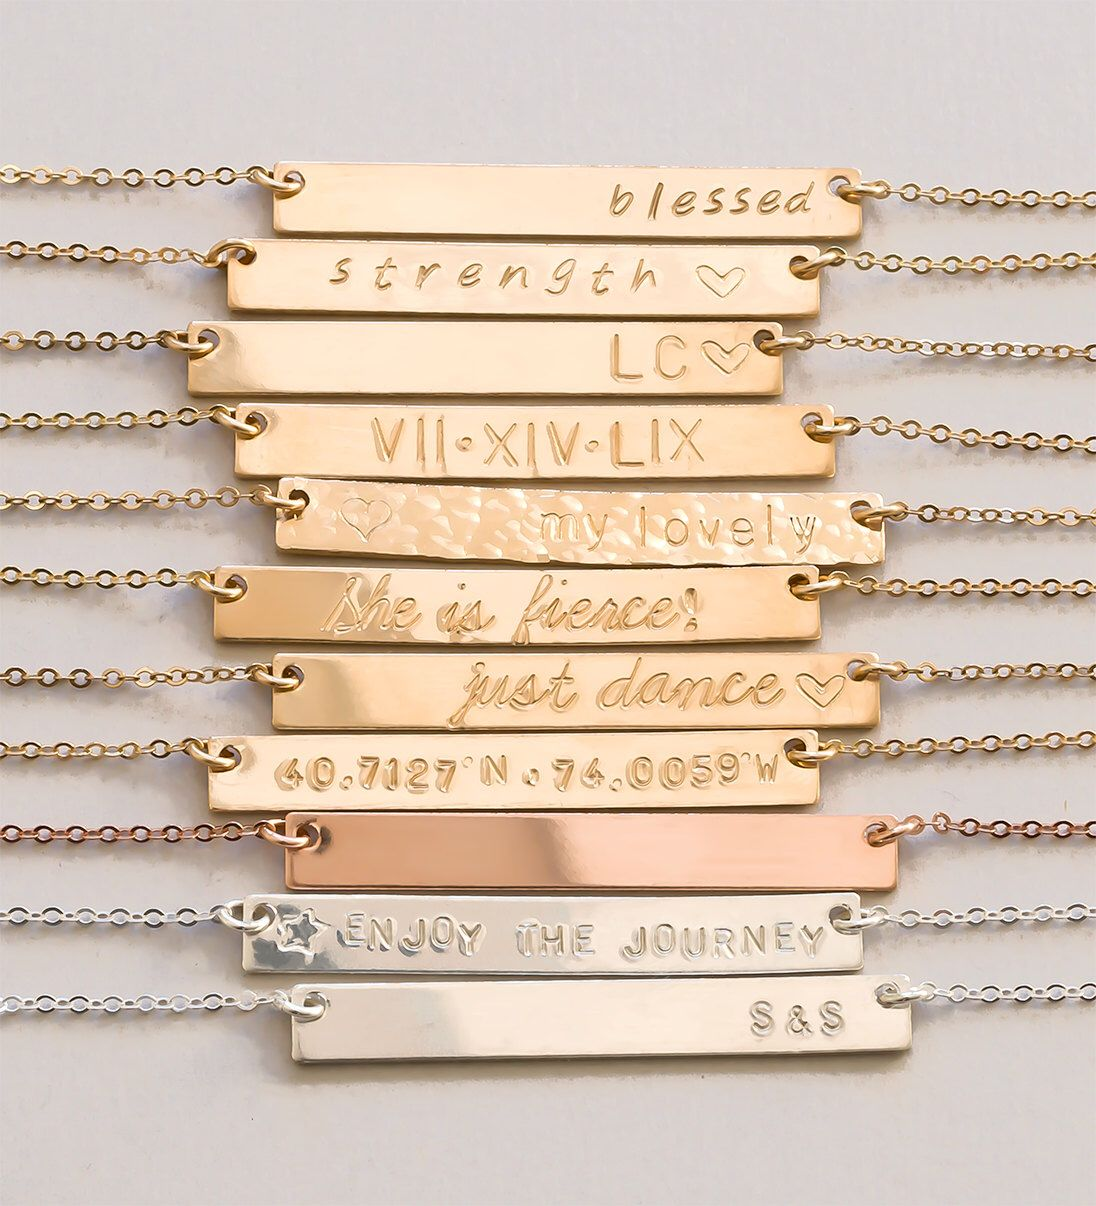 Personalized bar necklace valentines gift custom necklace gift personalized bar necklace gold bar necklace personalized jewelry name bar necklace personalize biocorpaavc